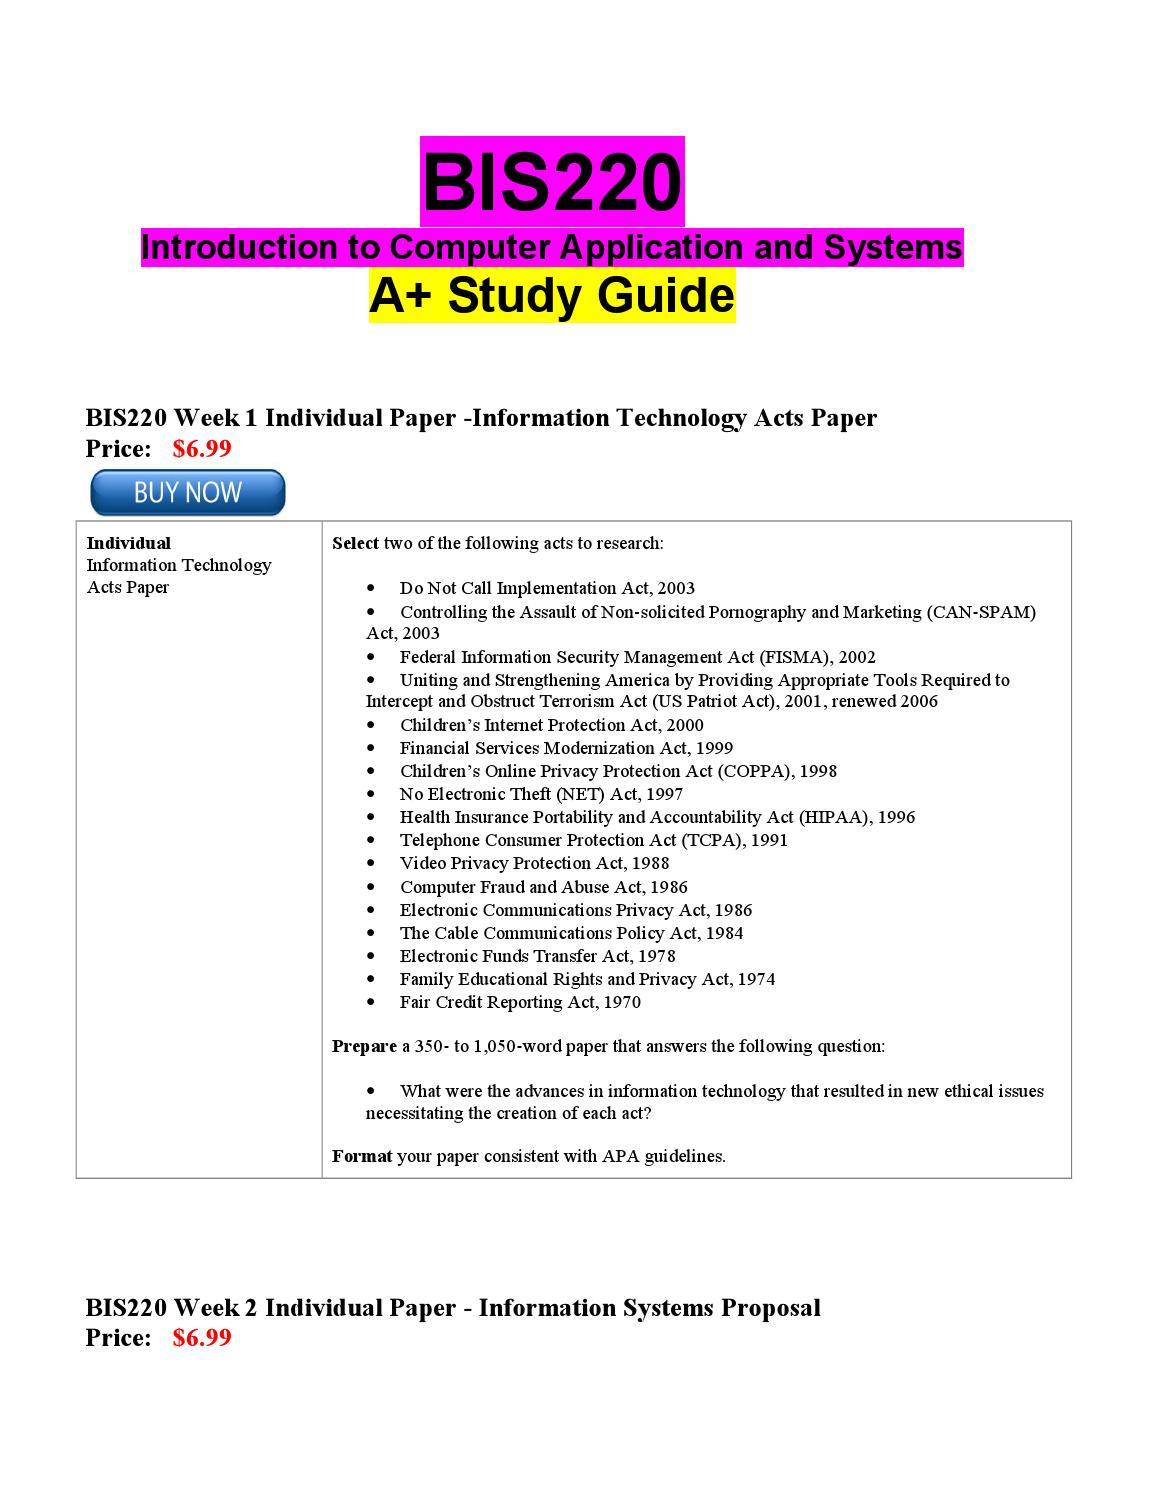 bis 220 week 2 information systems proposal Study flashcards and notes from tax school bis 220 week 5 team study bis 220 week 2 individual study guide information systems proposaldocx bis 220 week 1.